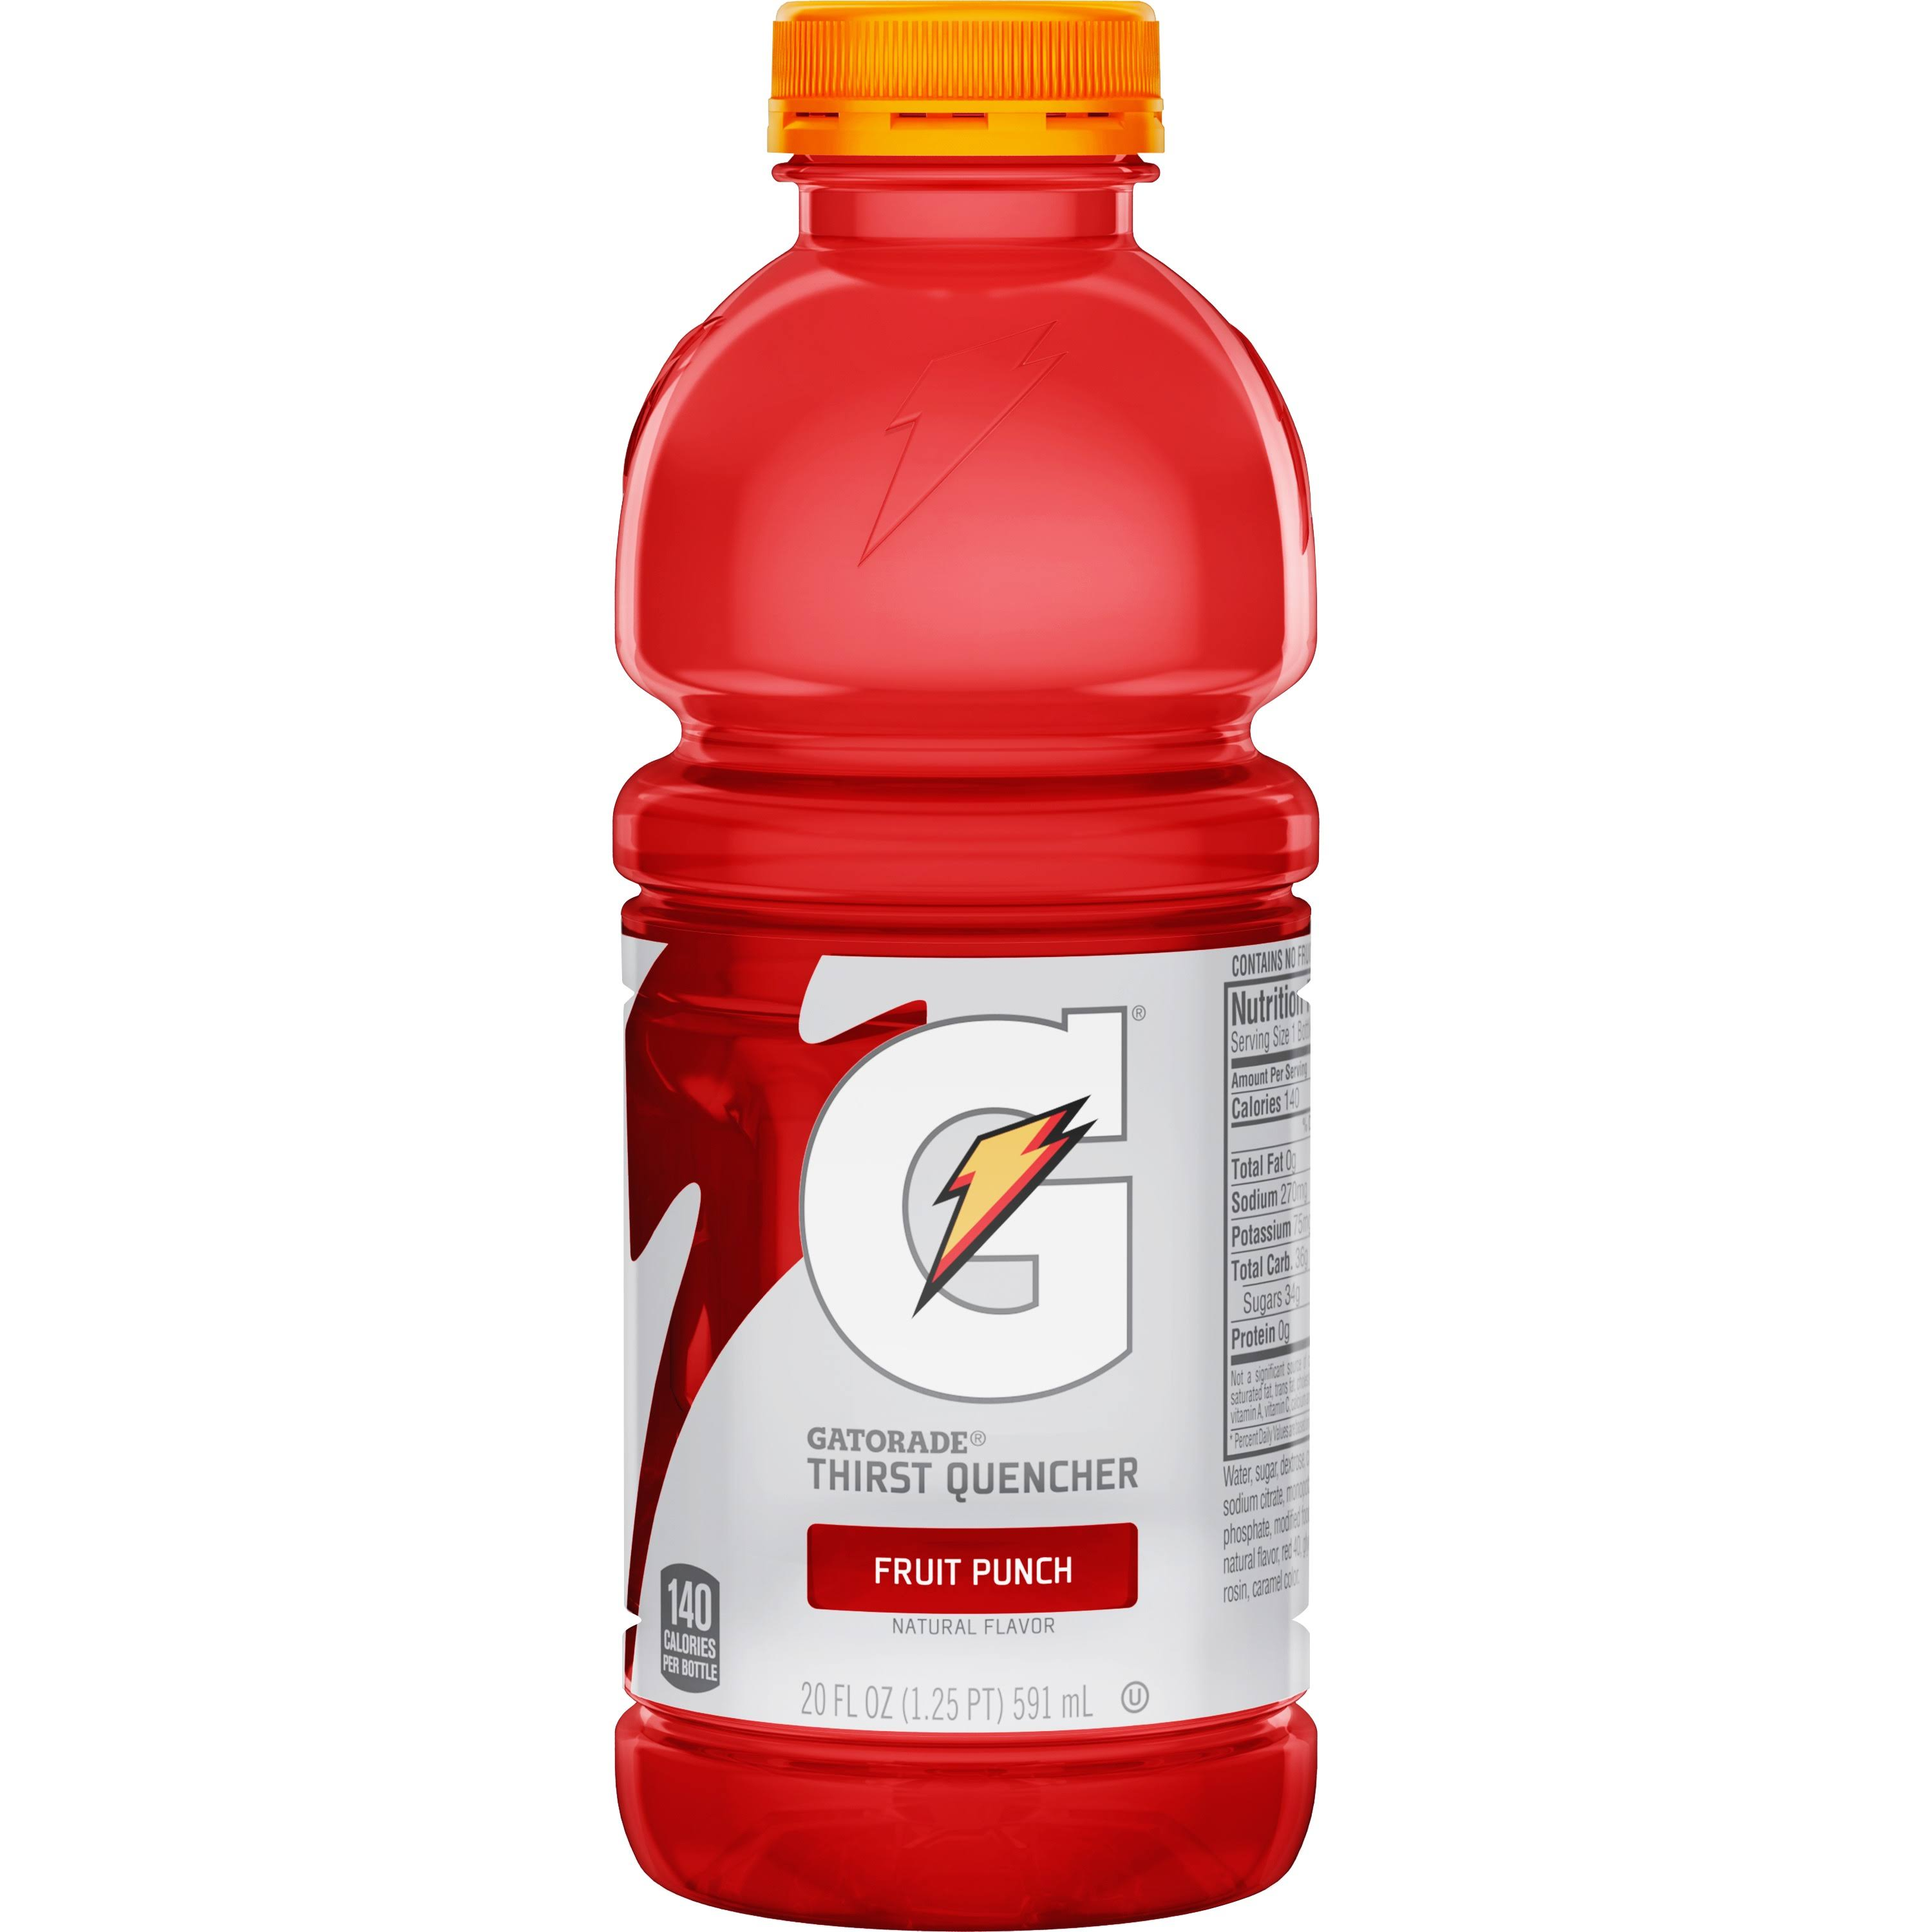 Gatorade Thirst Quencher Fruit Punch - 591ml